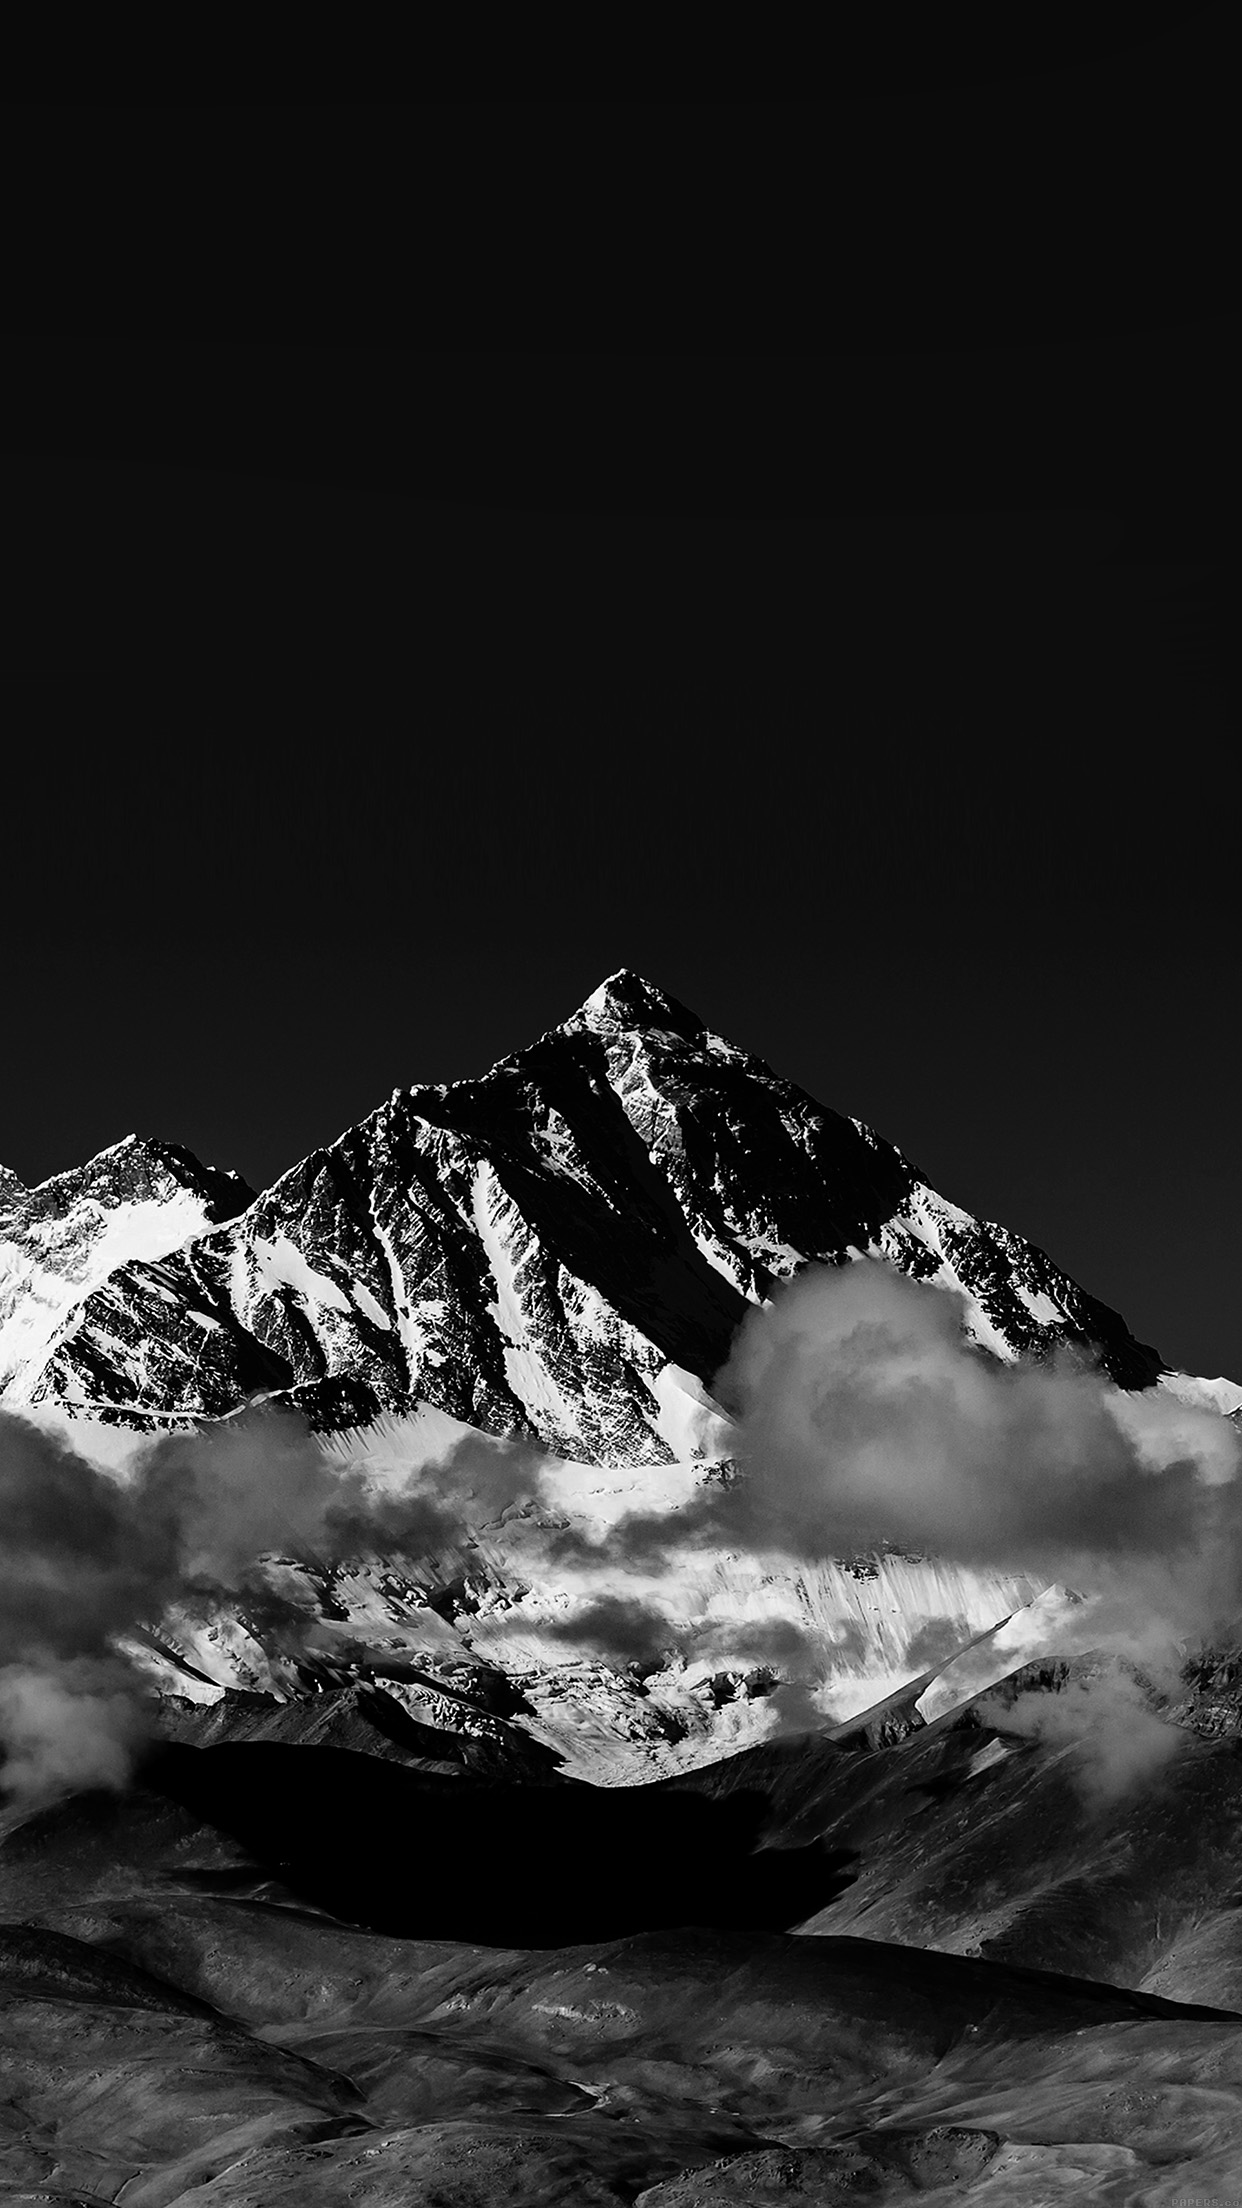 Iphone6papers Com Iphone 6 Wallpaper Mr57 Snow Solo Mountain